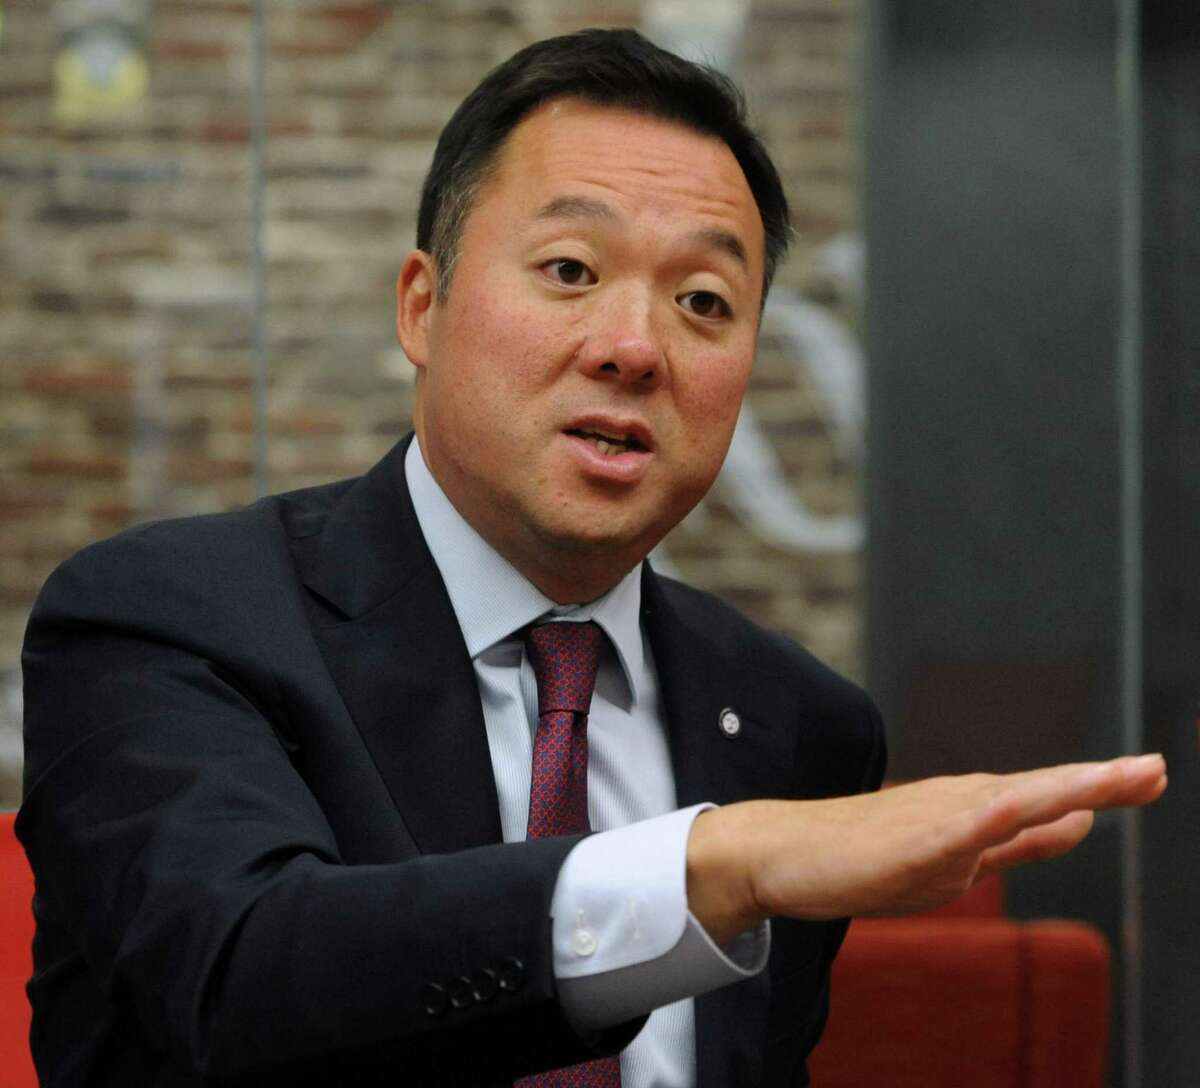 Connecticut Attorney General William Tong announced Friday, Sept. 17, 2021 that the state would appeal a bankruptcy judge's approval of Purdue Pharma's settlement plan.